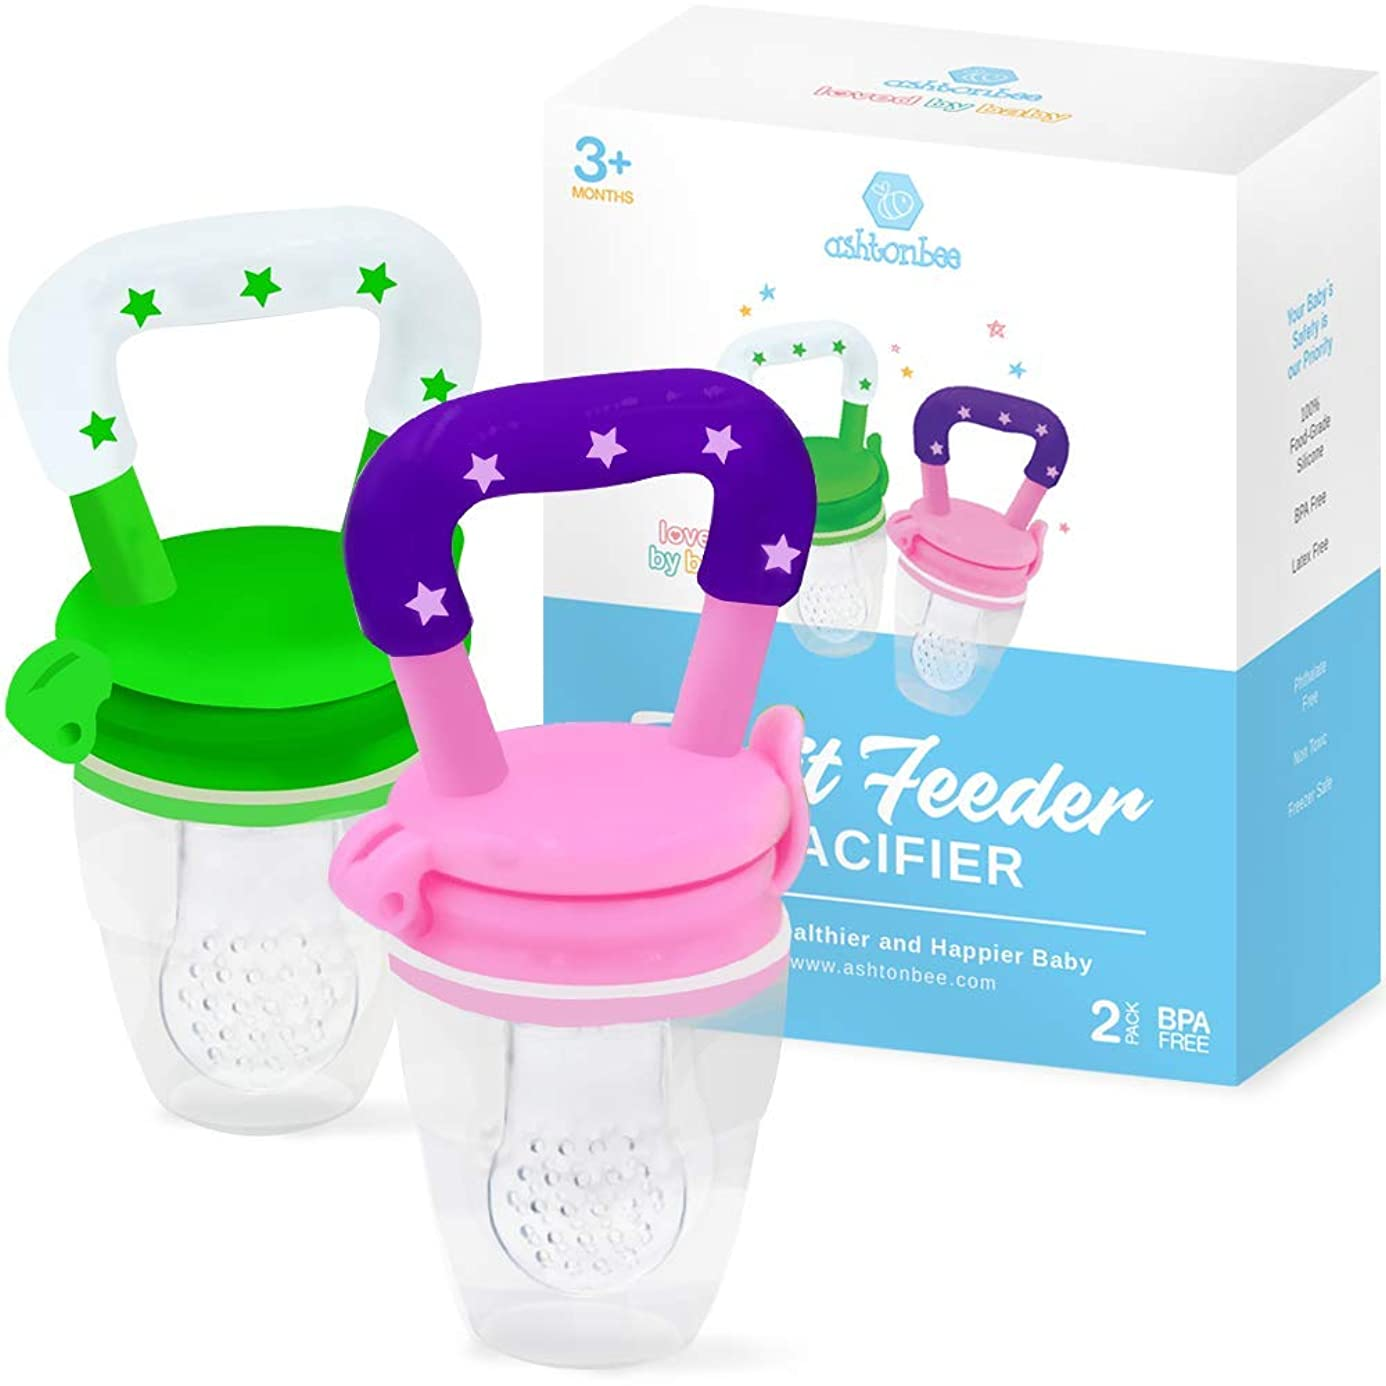 Baby Fruit Feeder Pacifier (2 Pack) - Fresh Food Feeder, Infant Fruit Teething Toy, Silicone Pouches for Toddlers & Kids by Ashtonbee